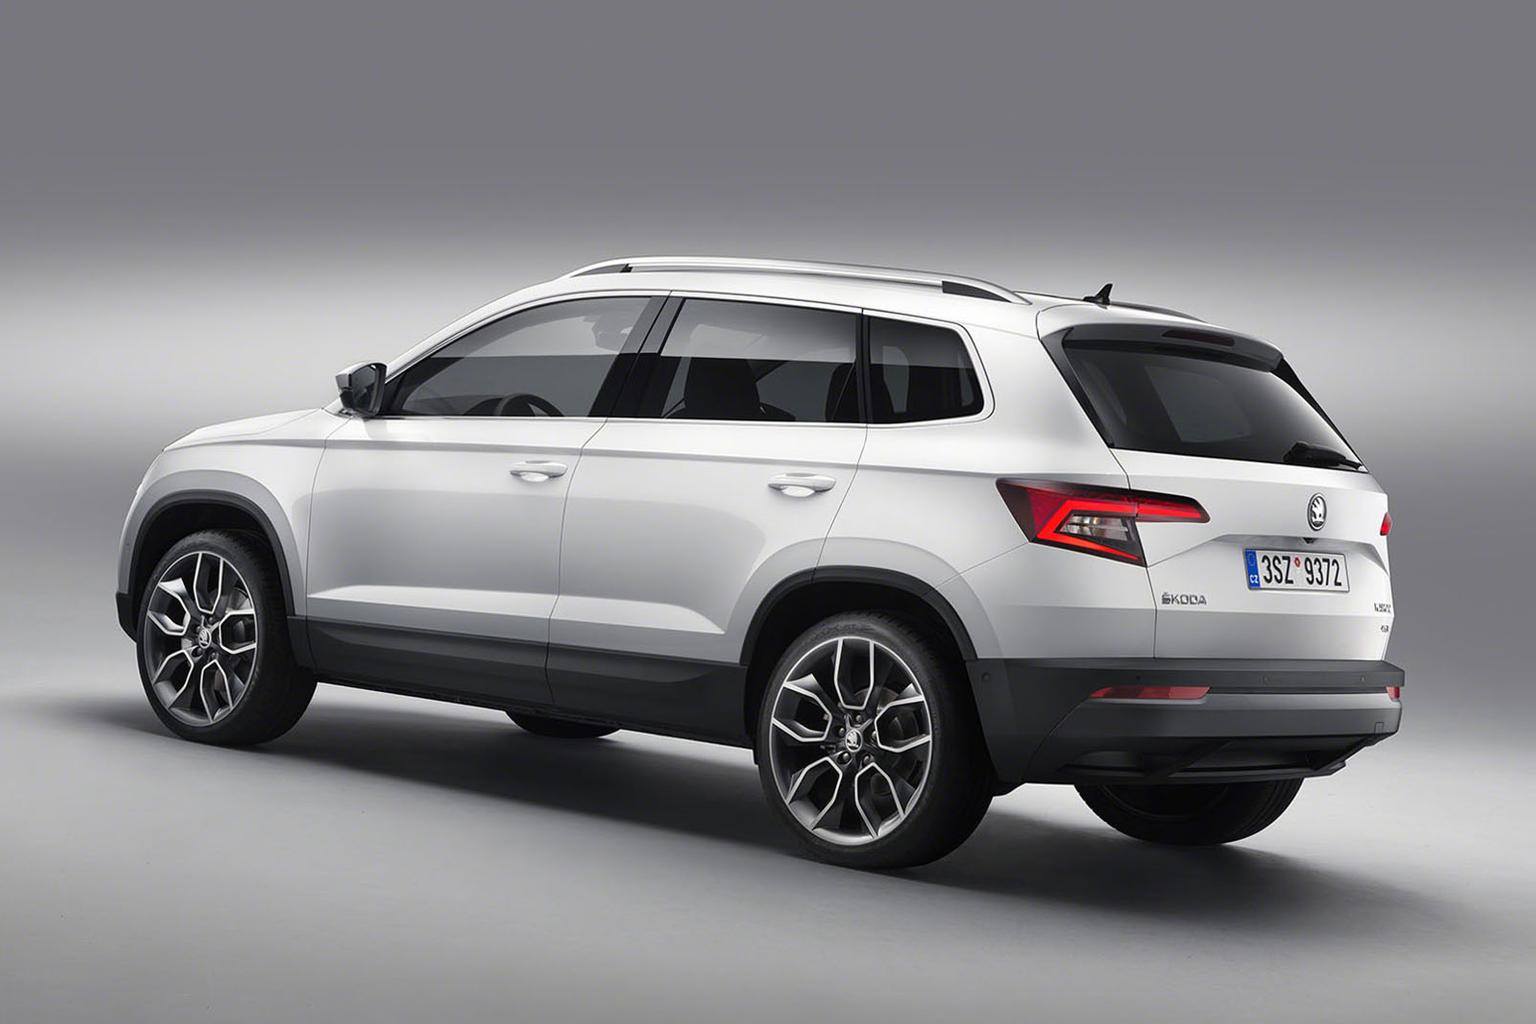 New Skoda Karoq in pictures